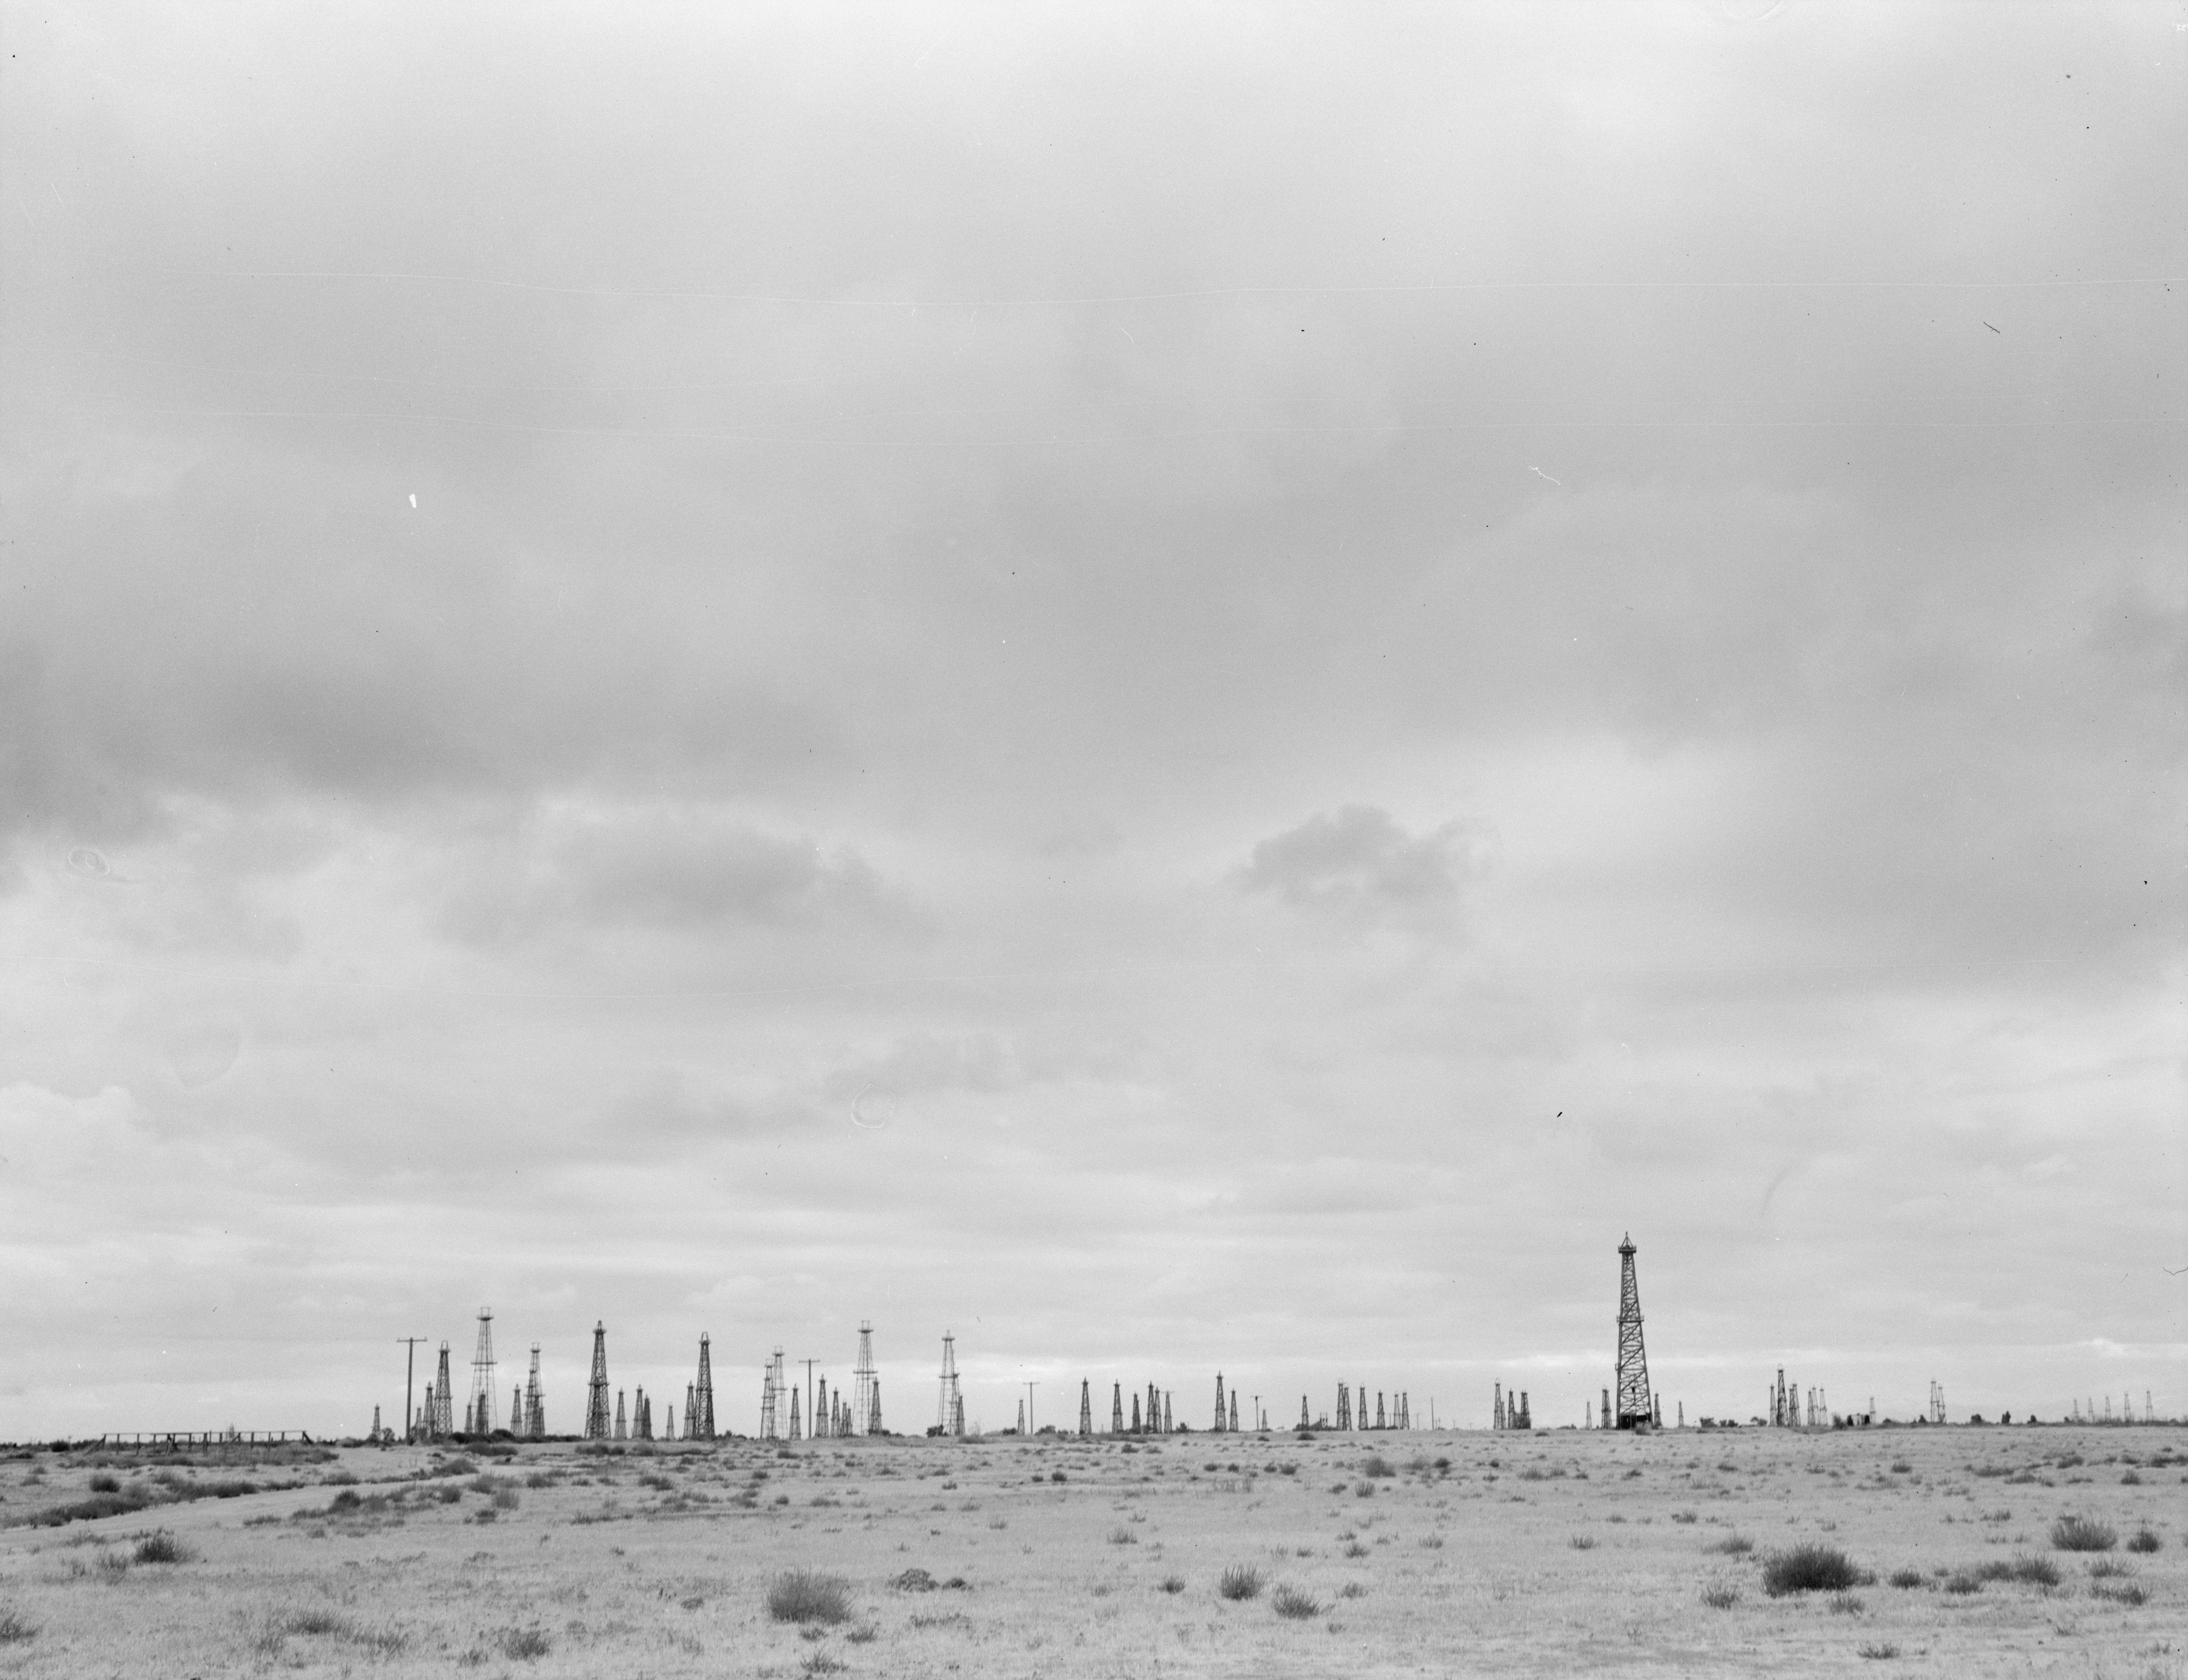 Oil field in California, 1938.